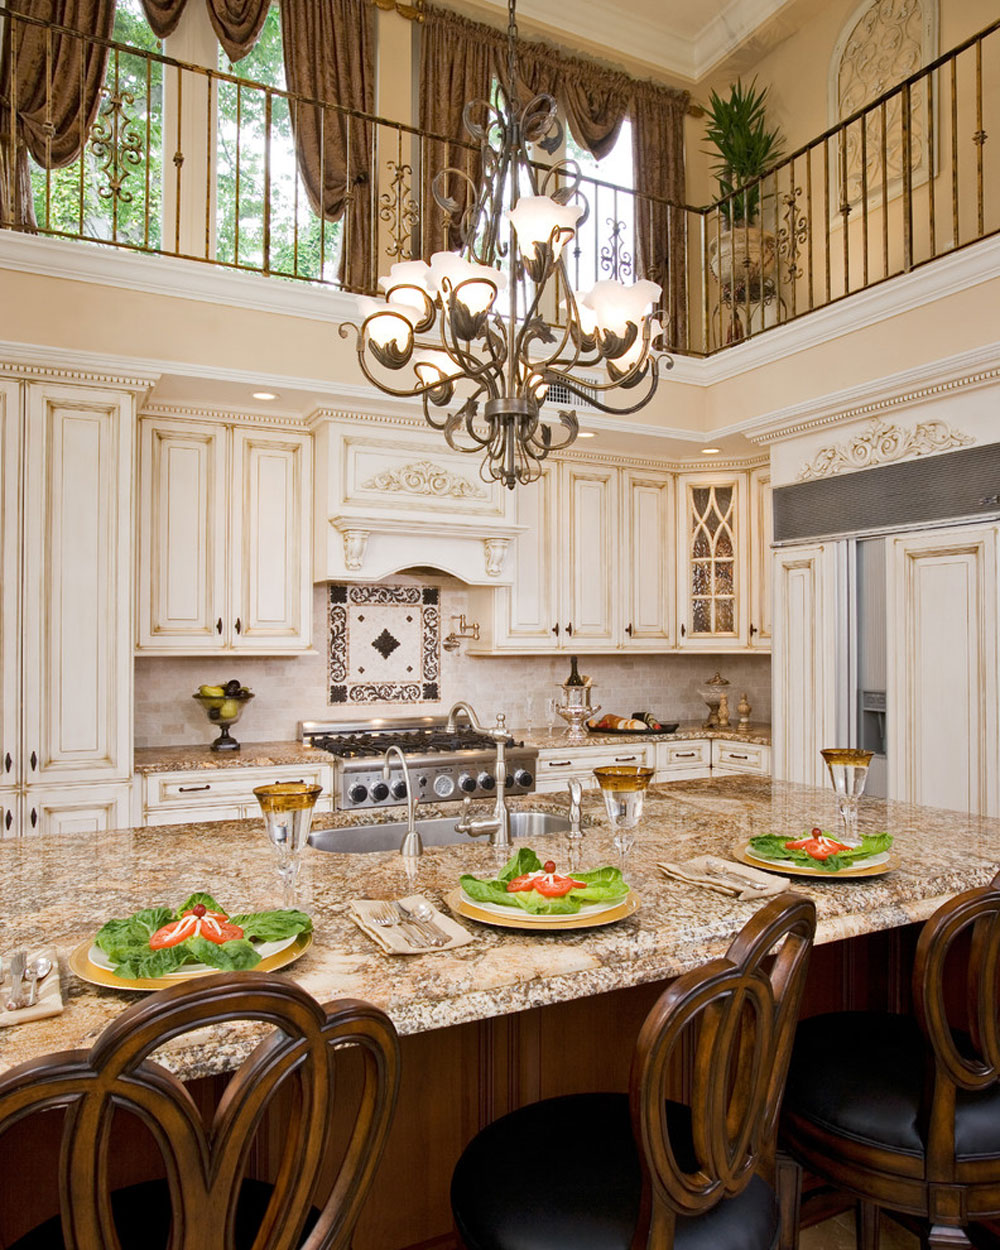 pictures contemporary remodeling kitchens modern country id old themes decor ideas picture farmhouse design full stupendous kitchen of size vintage